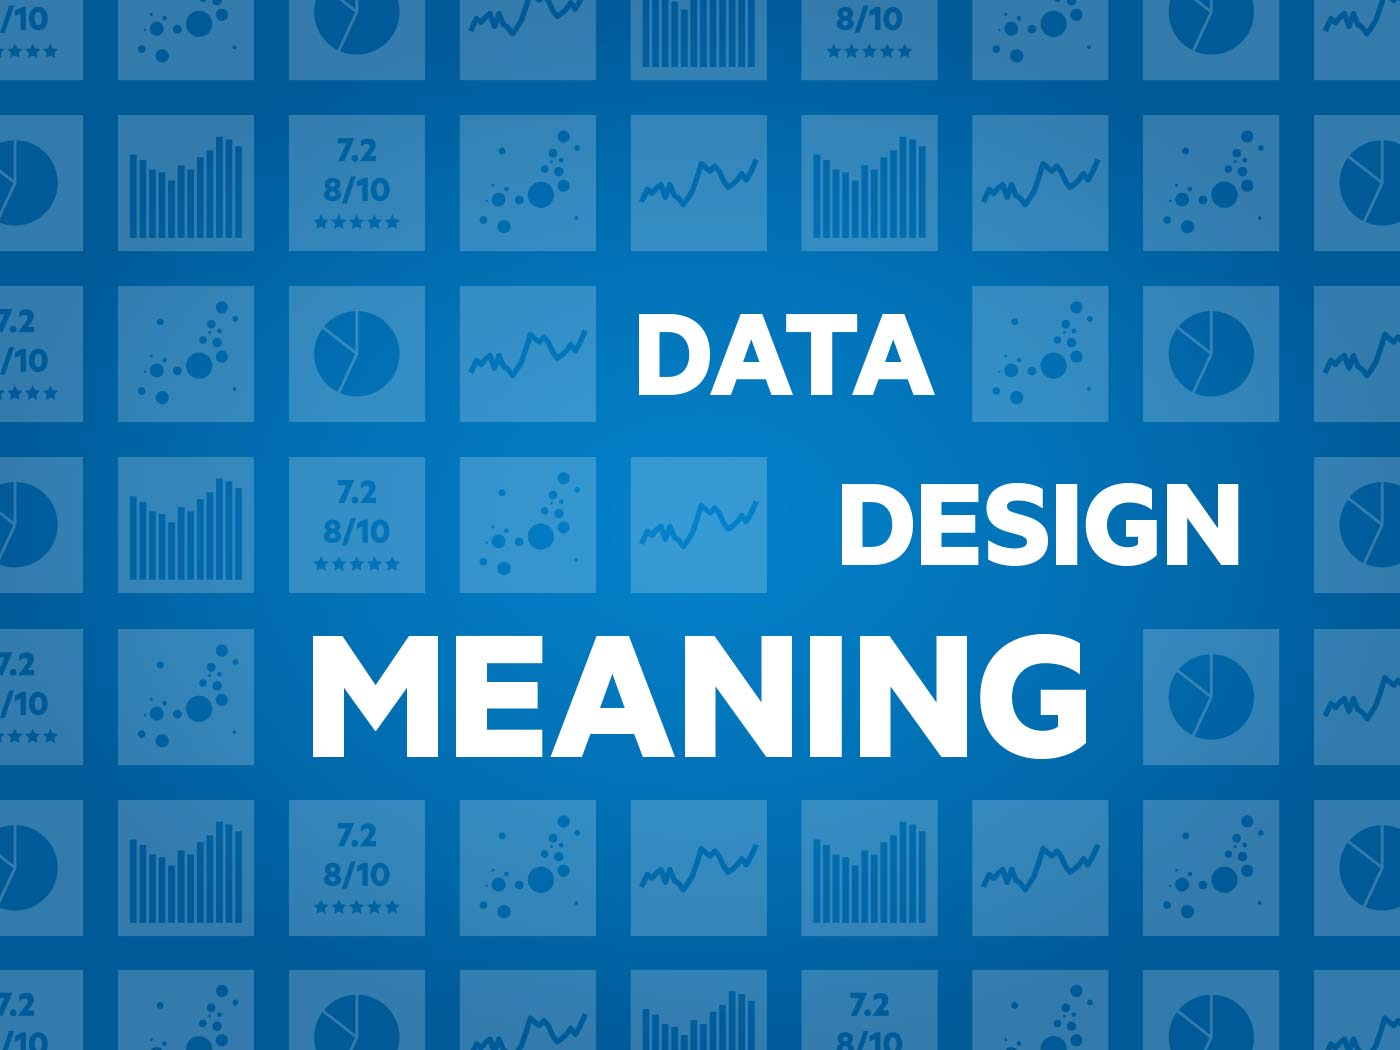 pycon_data_design_meaning-1